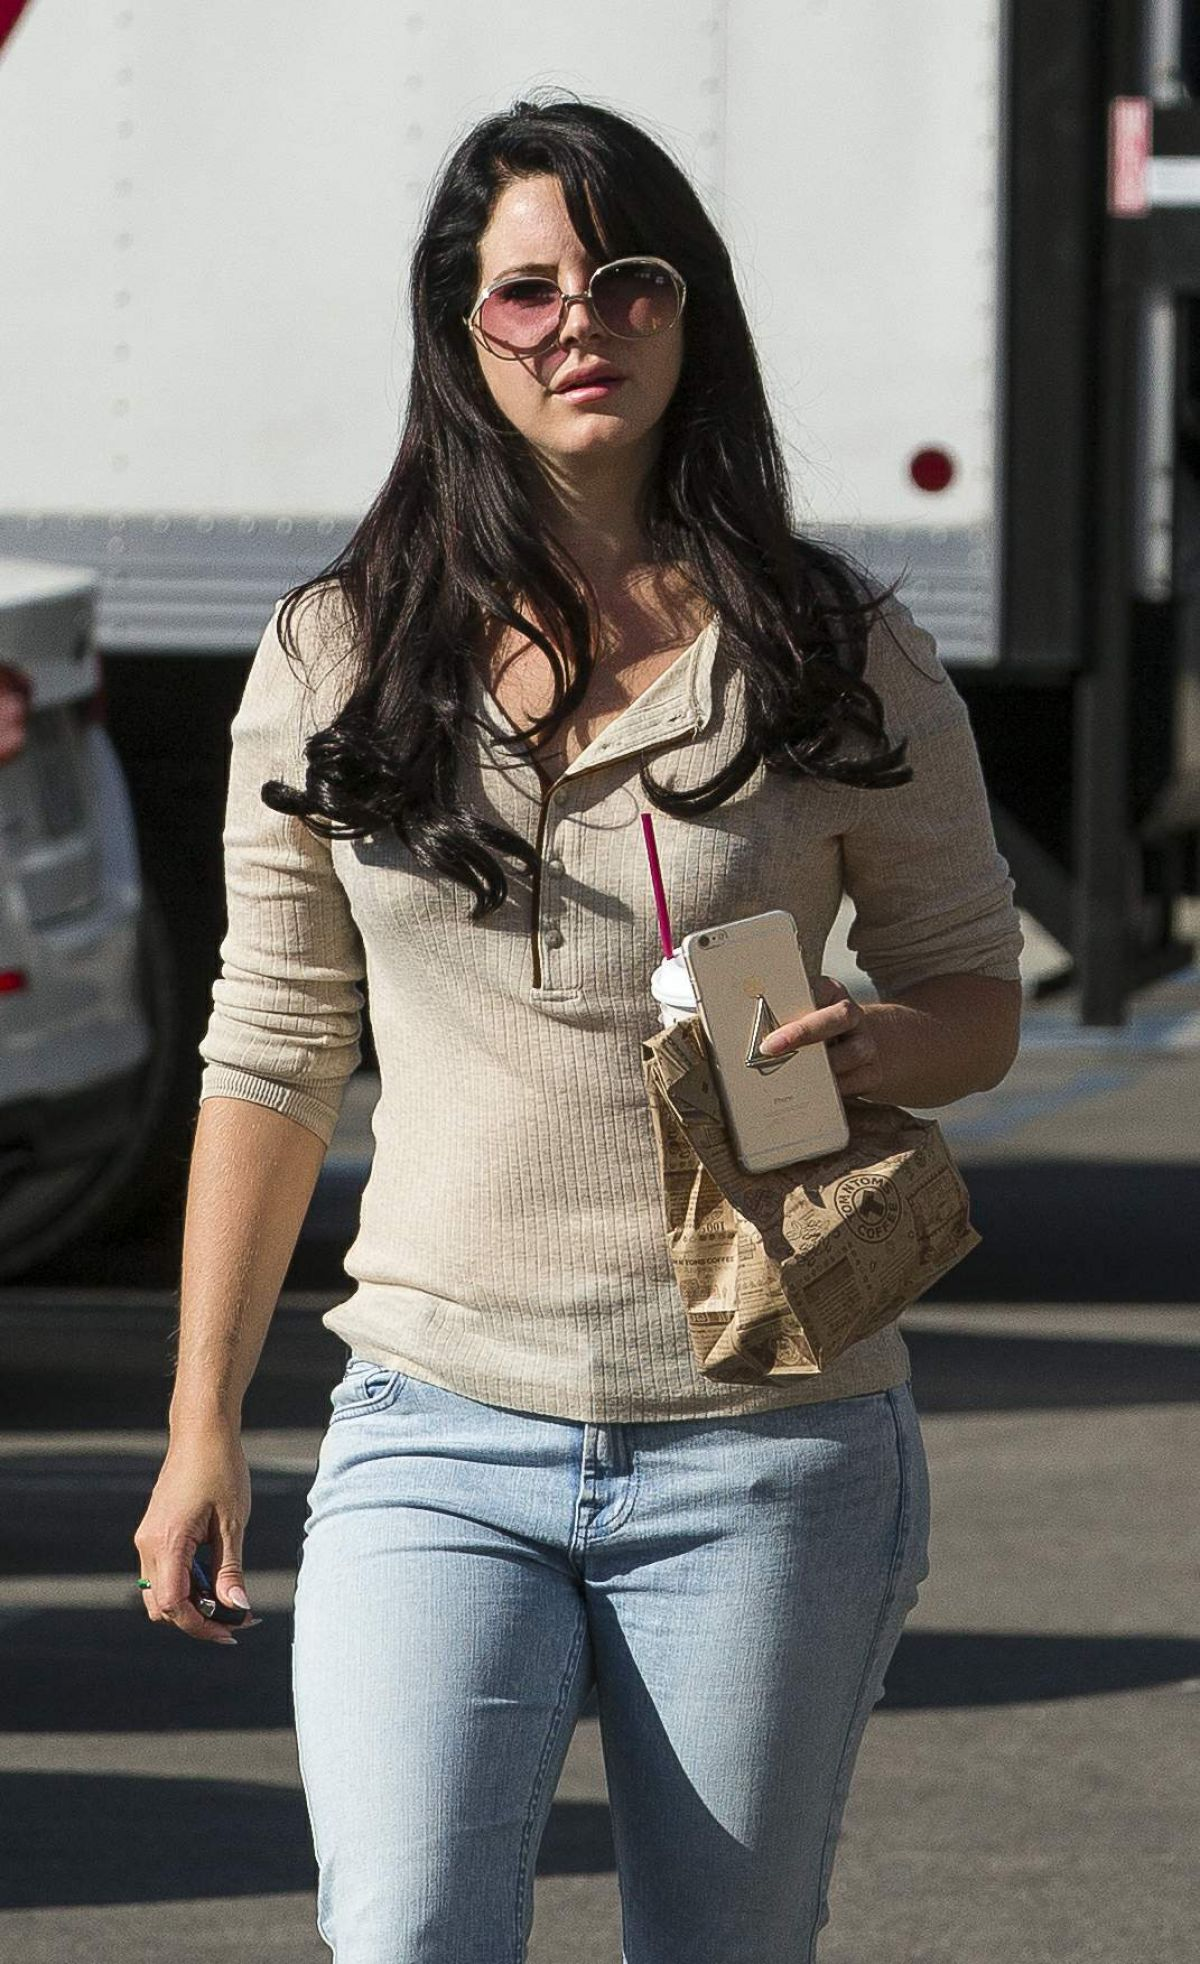 lana-del-rey-out-for-coffee-in-los-angel